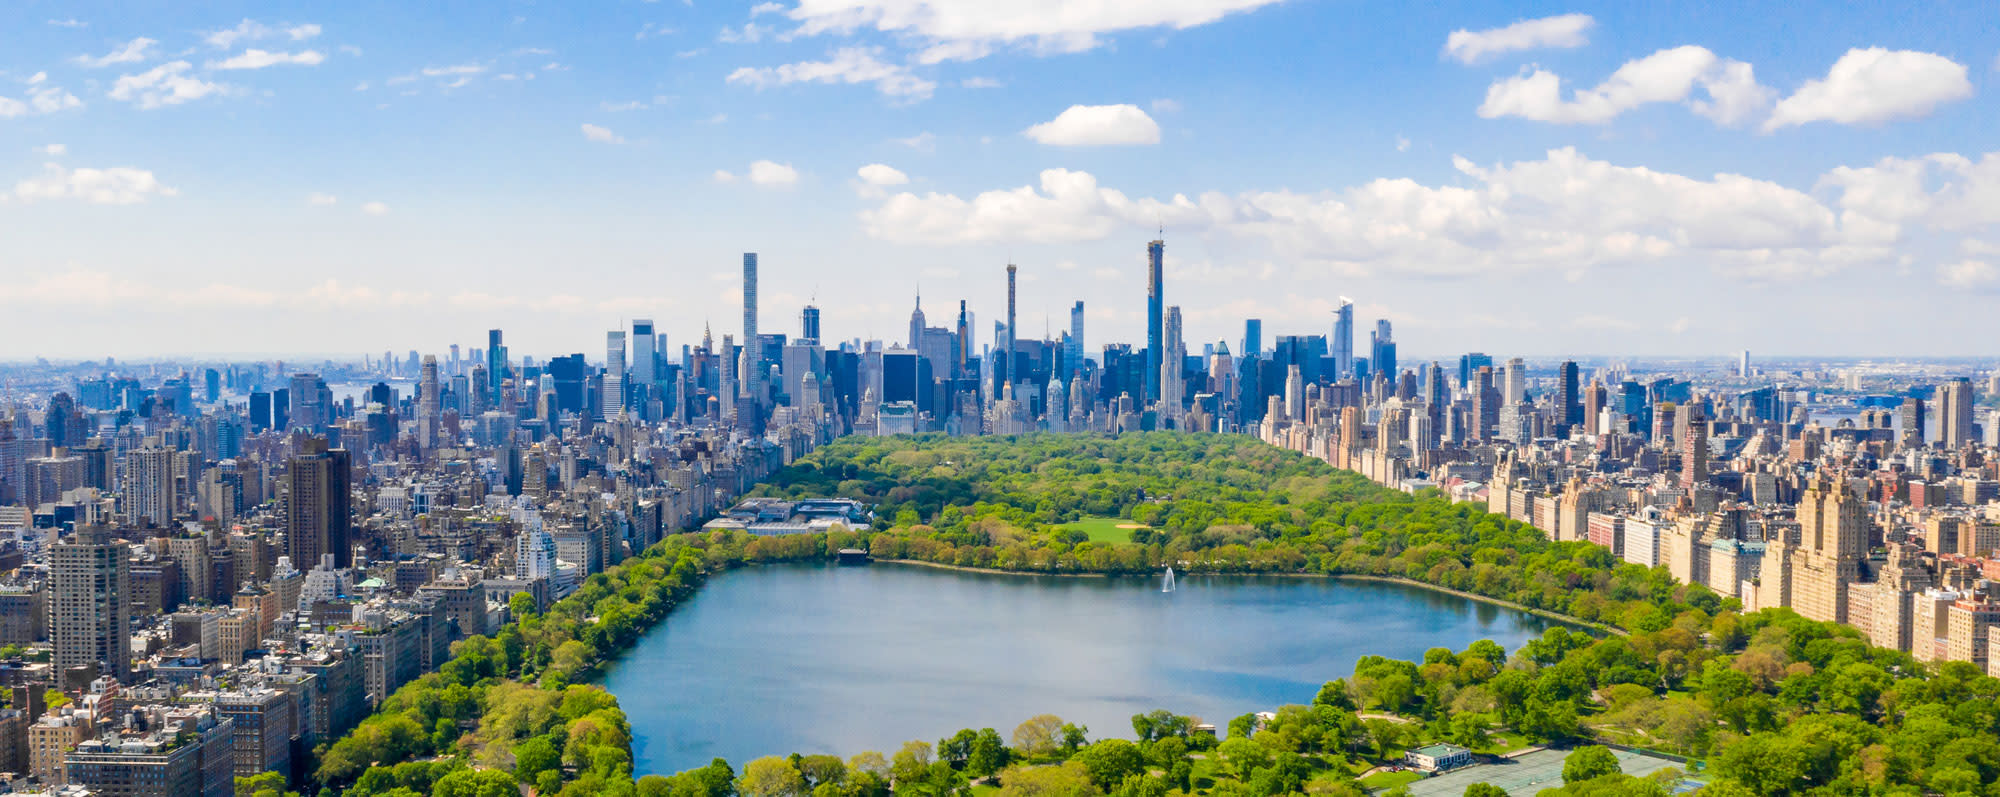 View of Manhattan's skyline with the Central Park reservoir